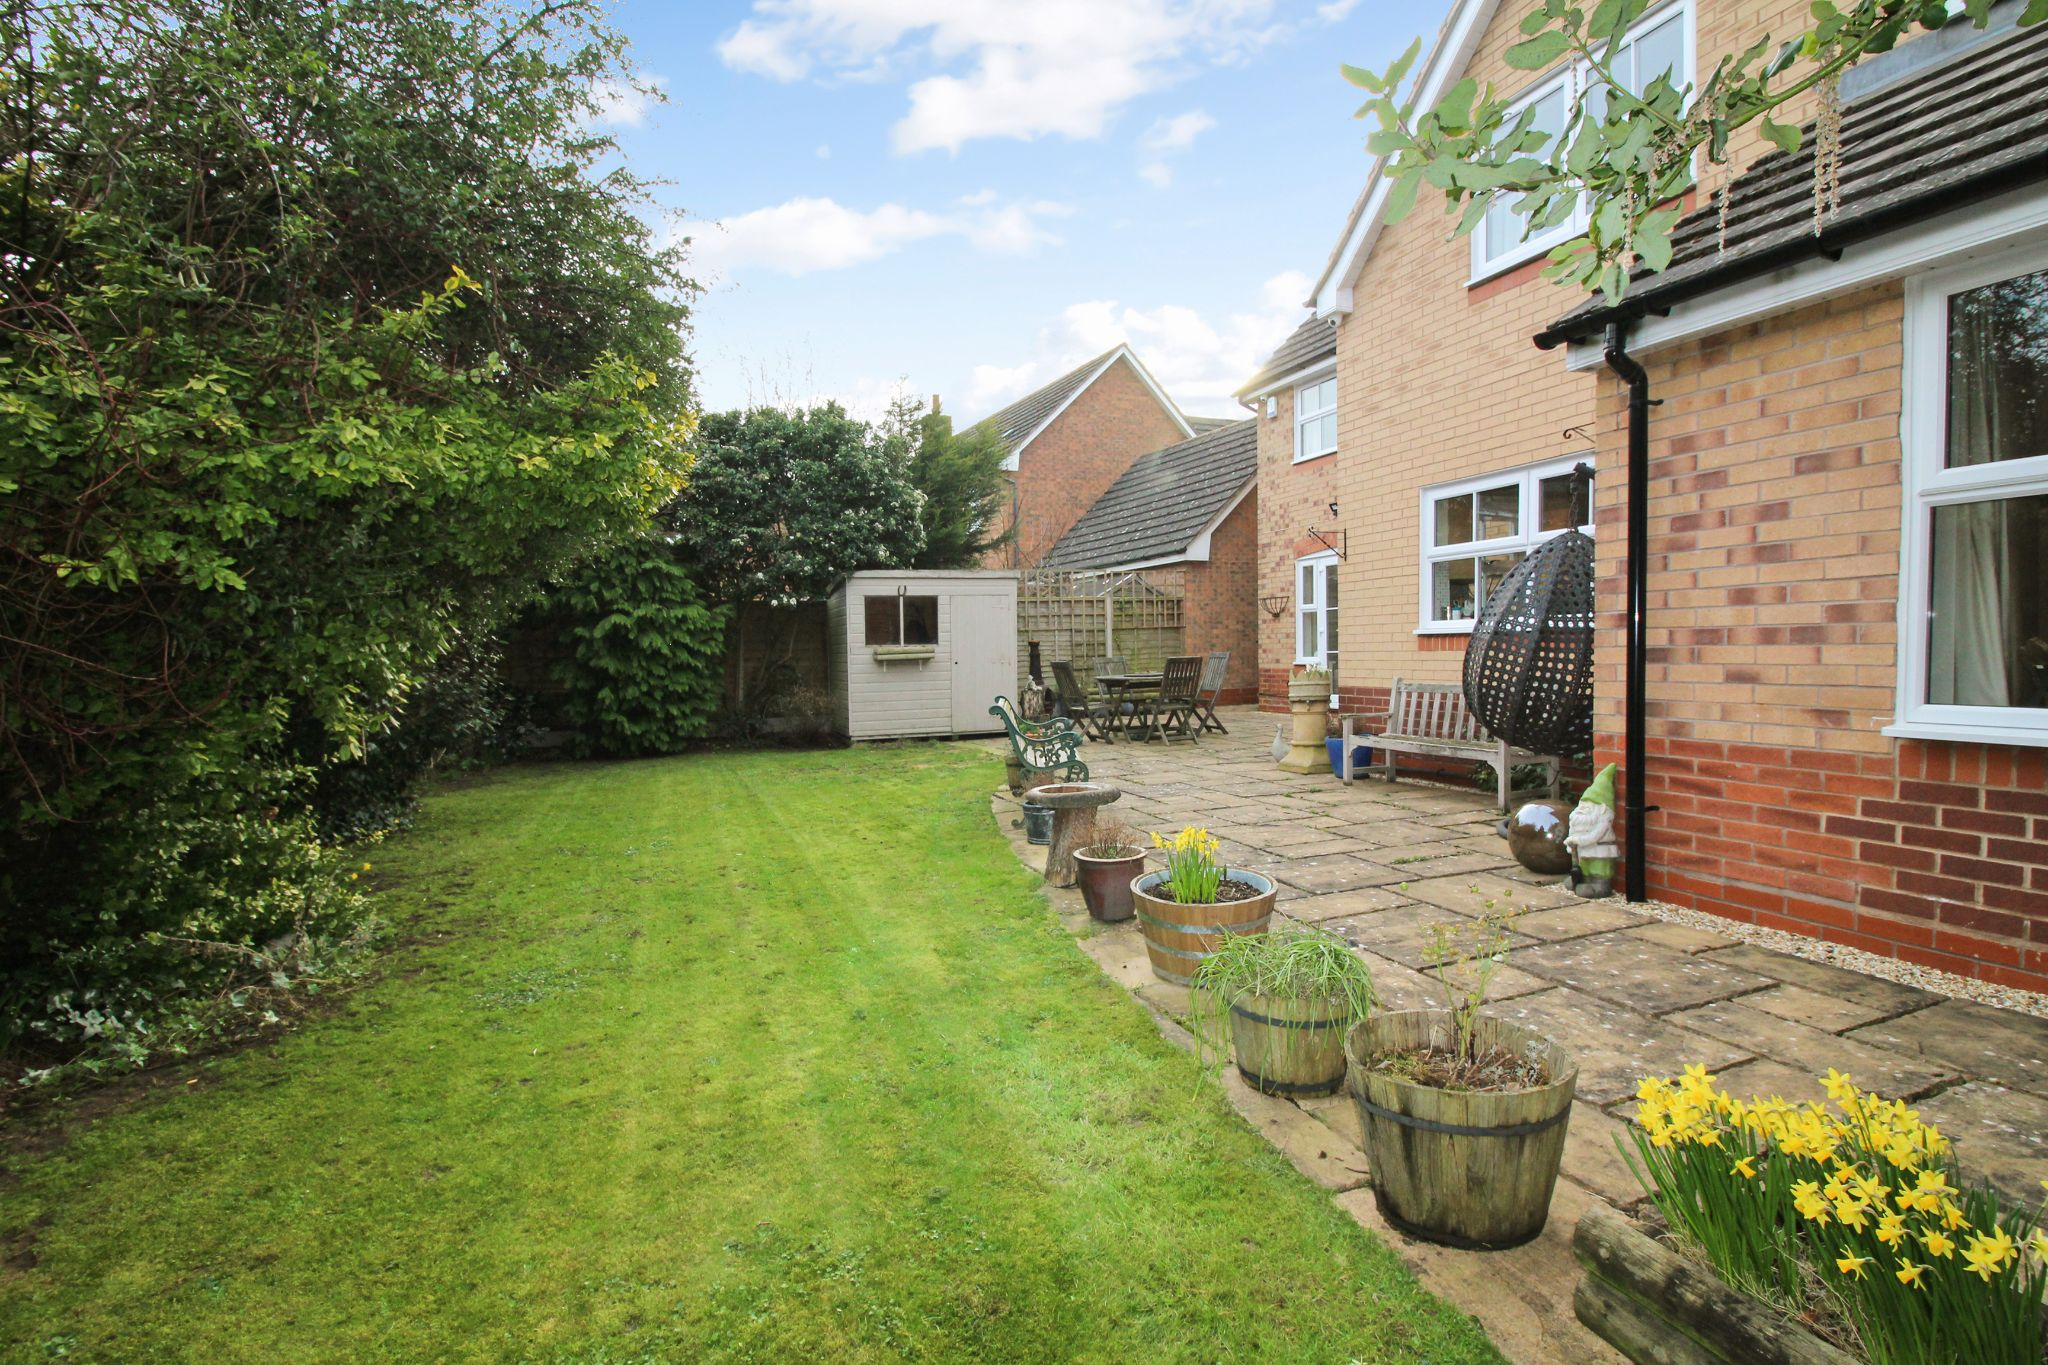 5 bedroom detached house SSTC in Solihull - Photograph 20.